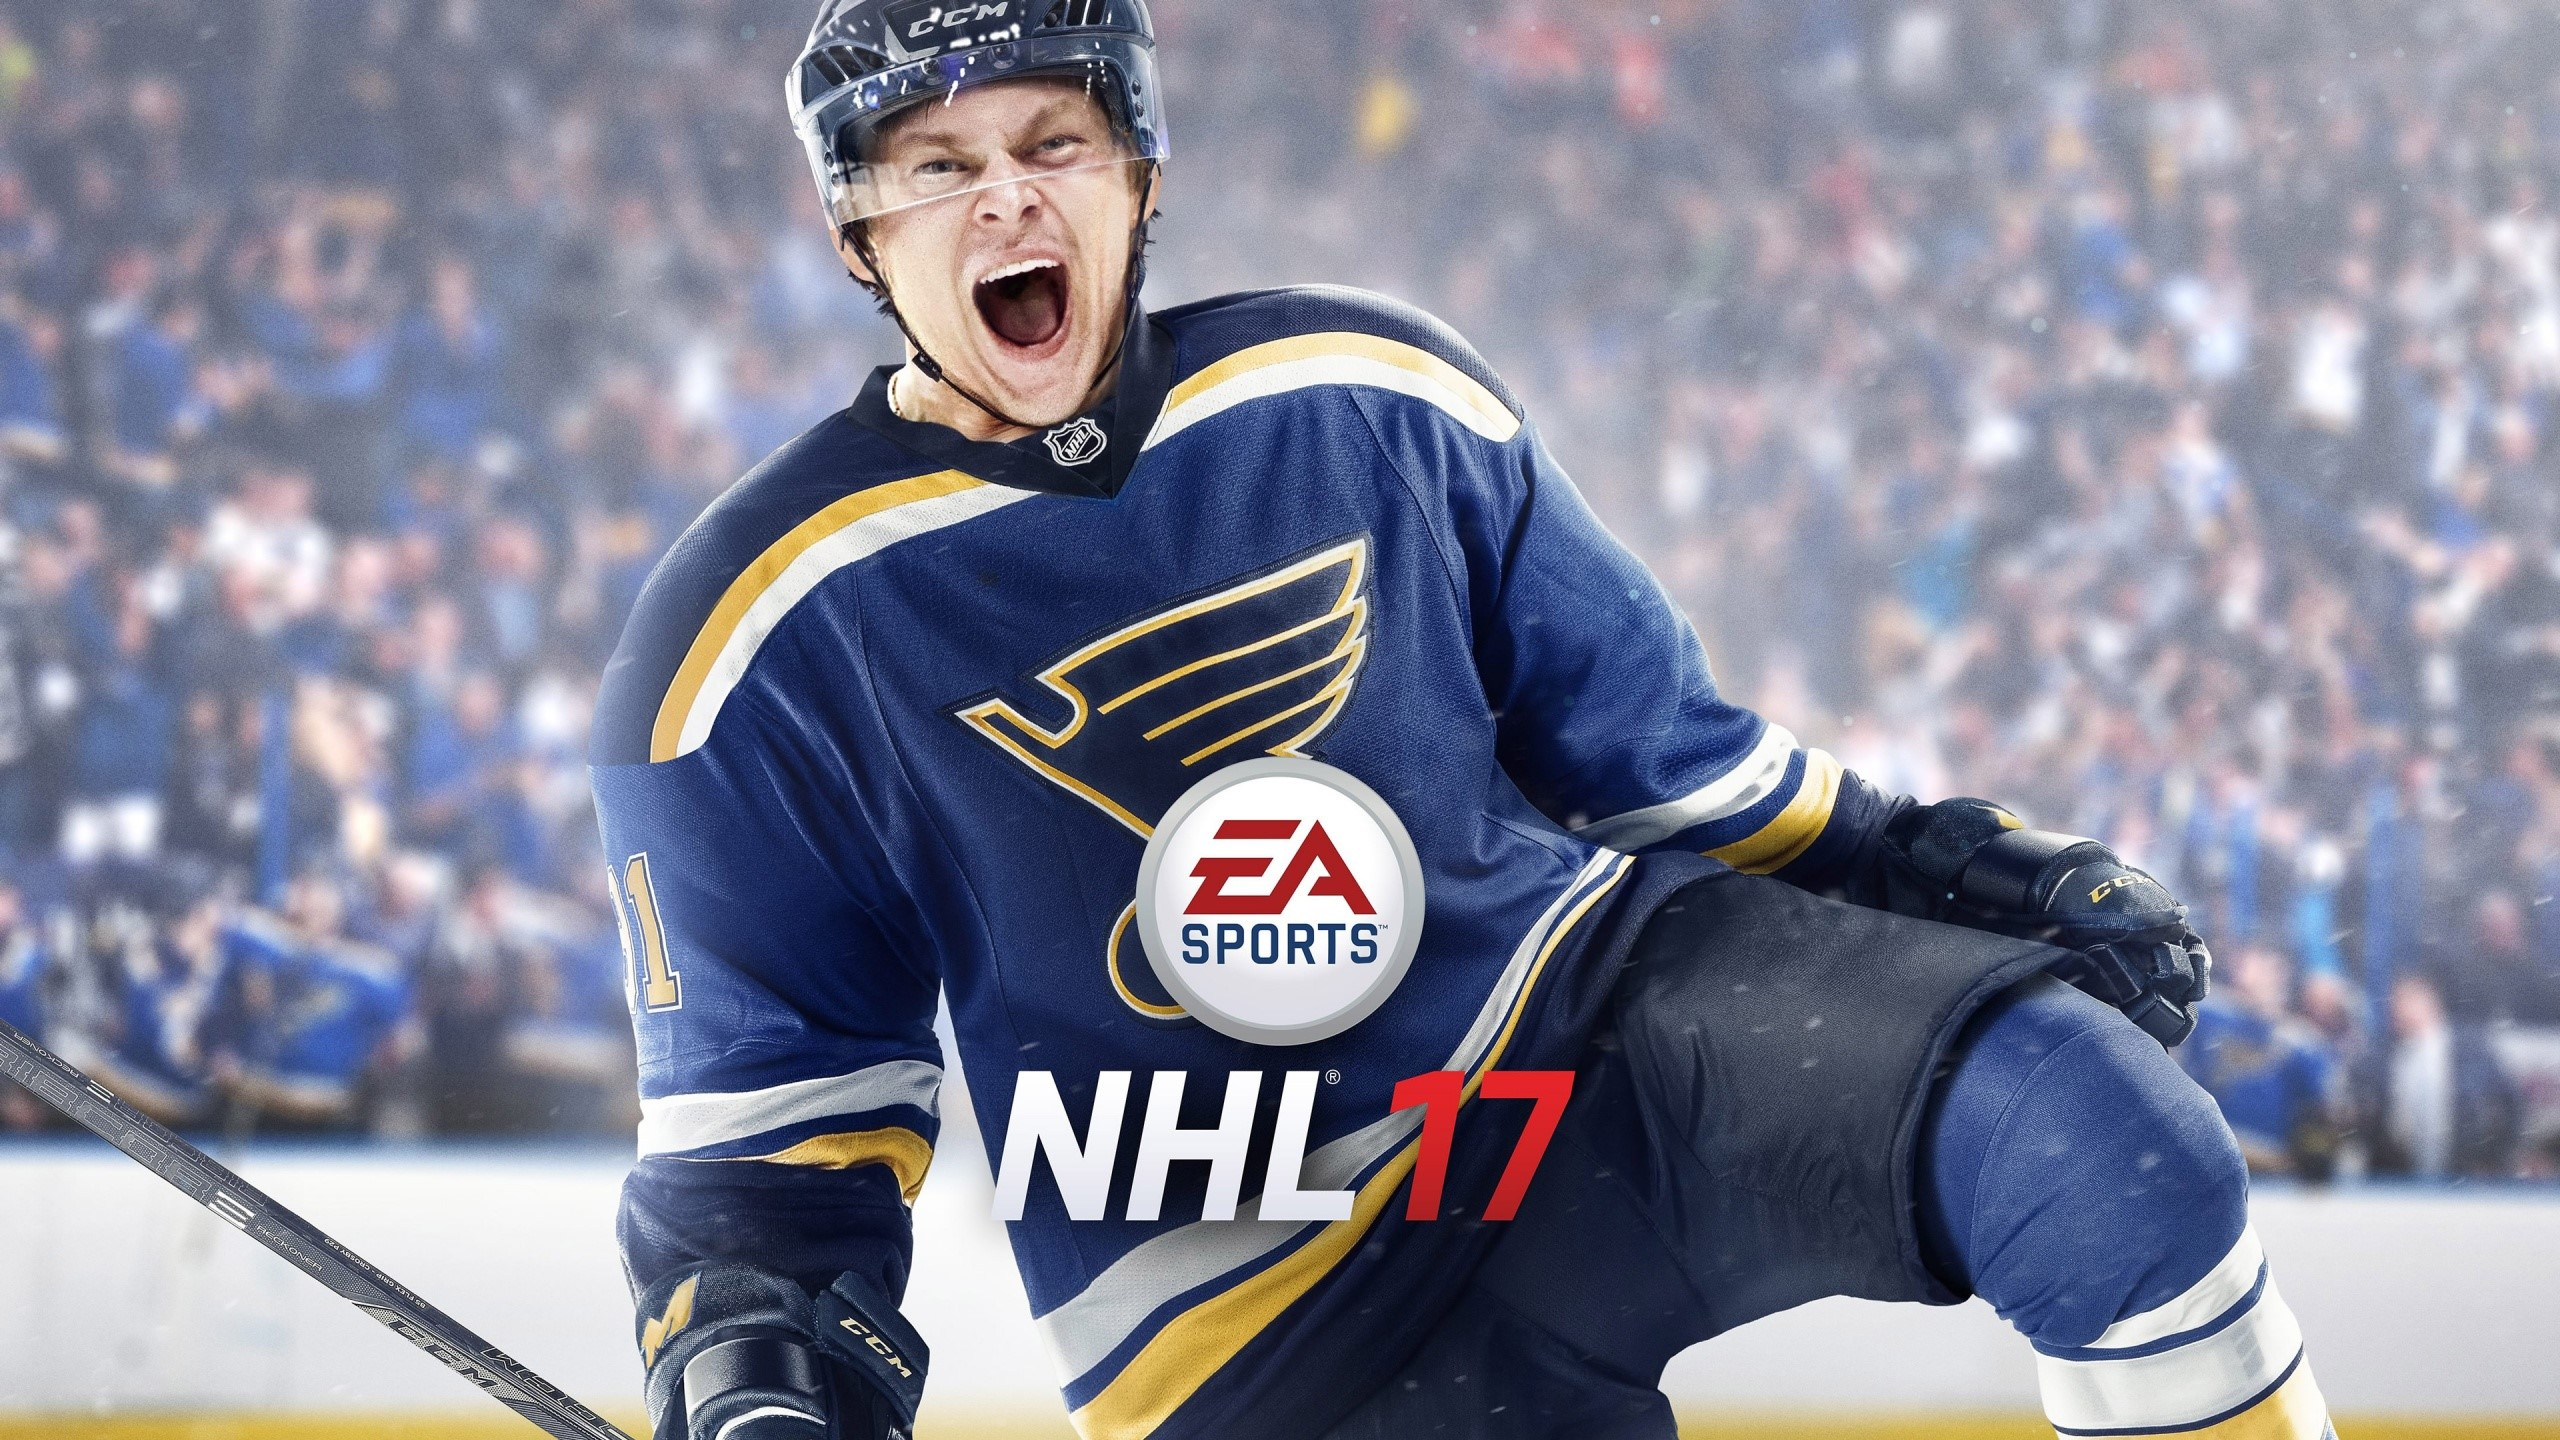 Wallpaper Juego NHL 17 de EA sports Images